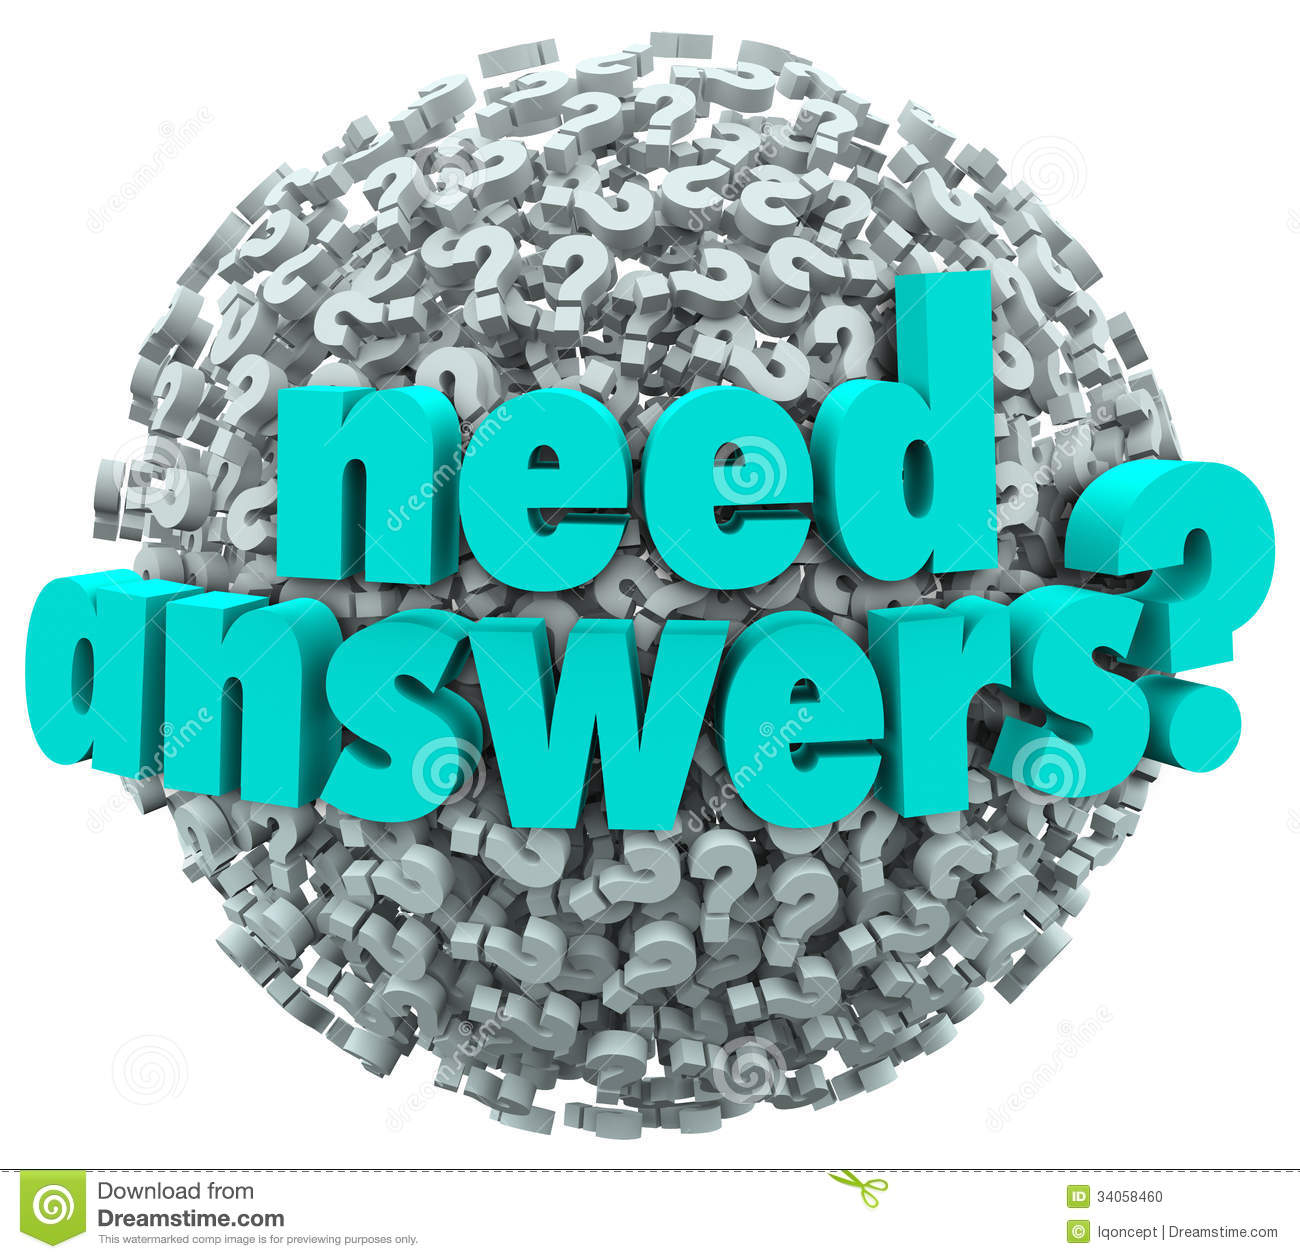 Song No Need Download: Need Answers Word Ball Question Marks Seeking Solution